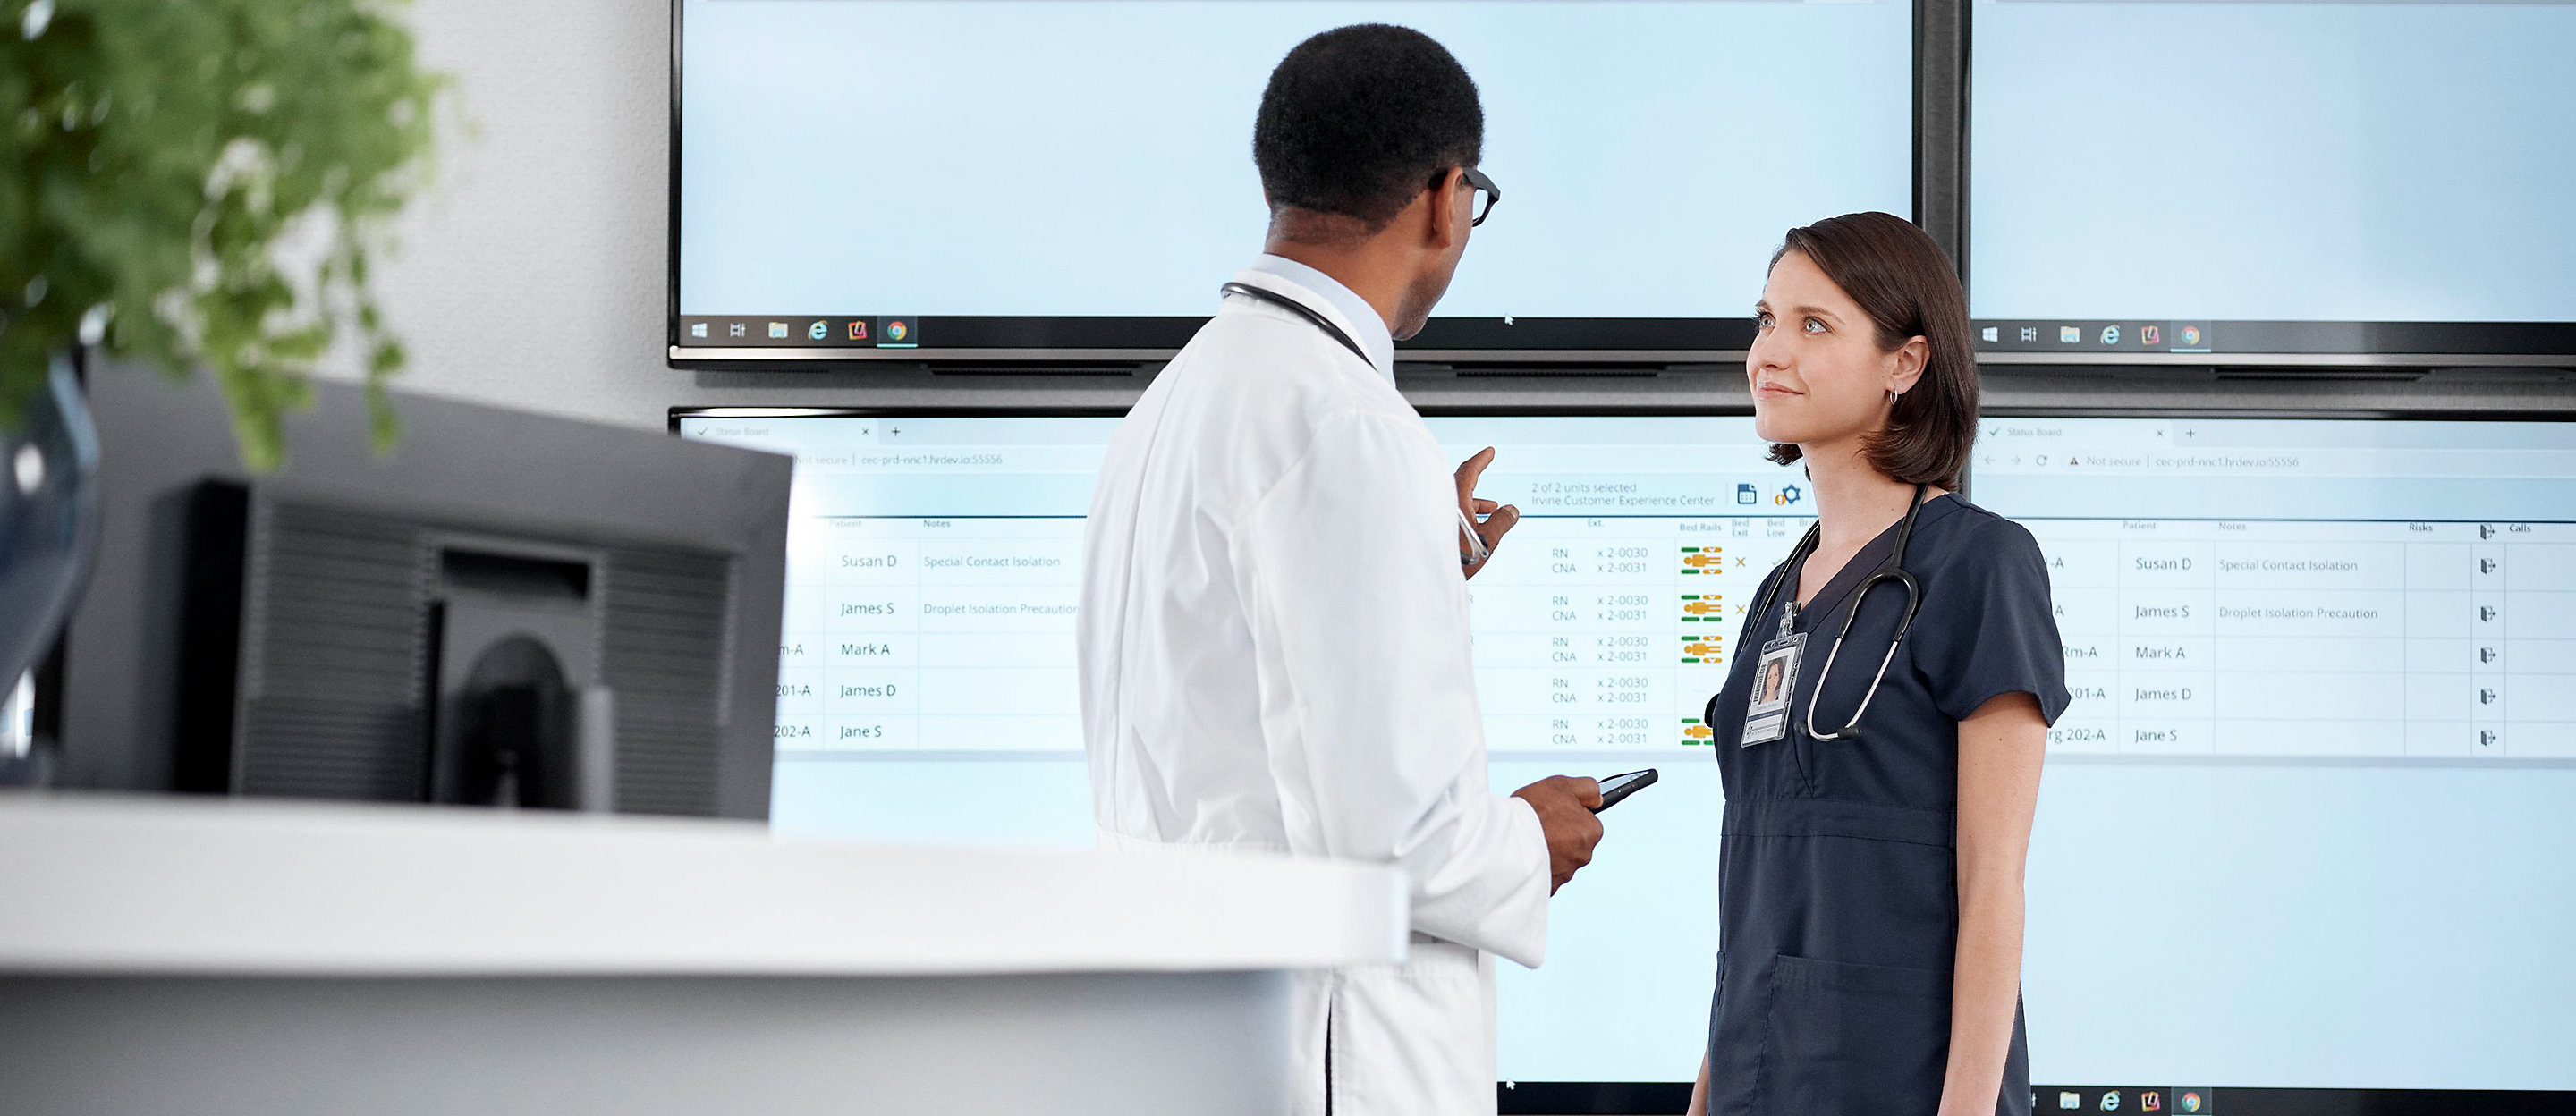 Two clinicians discuss patient statuses near a nurses' station, with large monitors displaying Voalte Nurse Call.